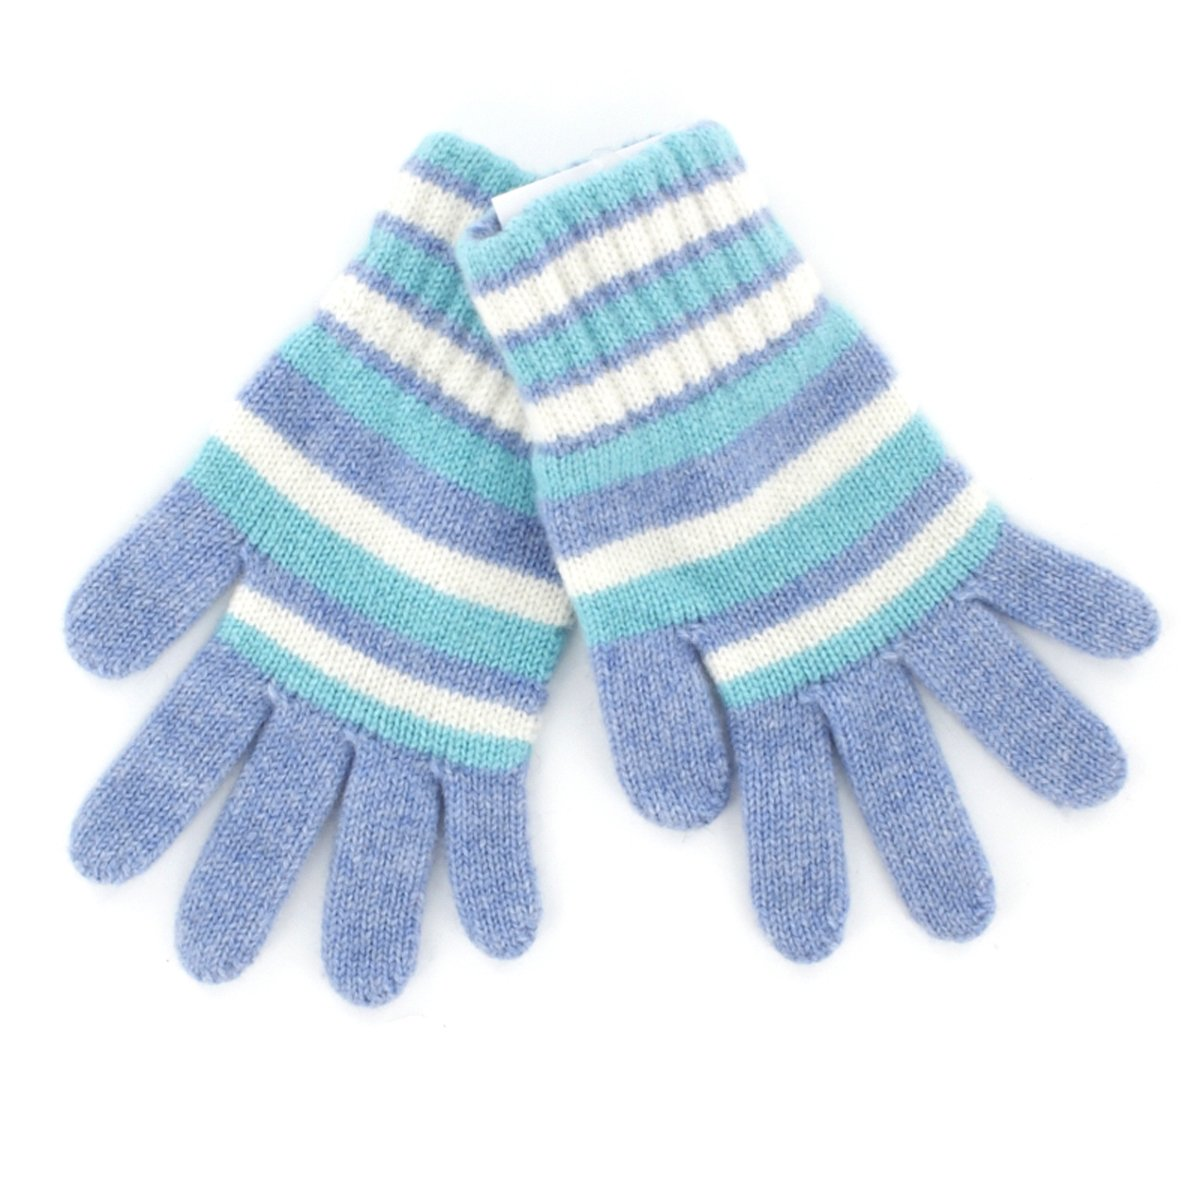 Children's Stripey Cashmere Gloves Made in Scotland